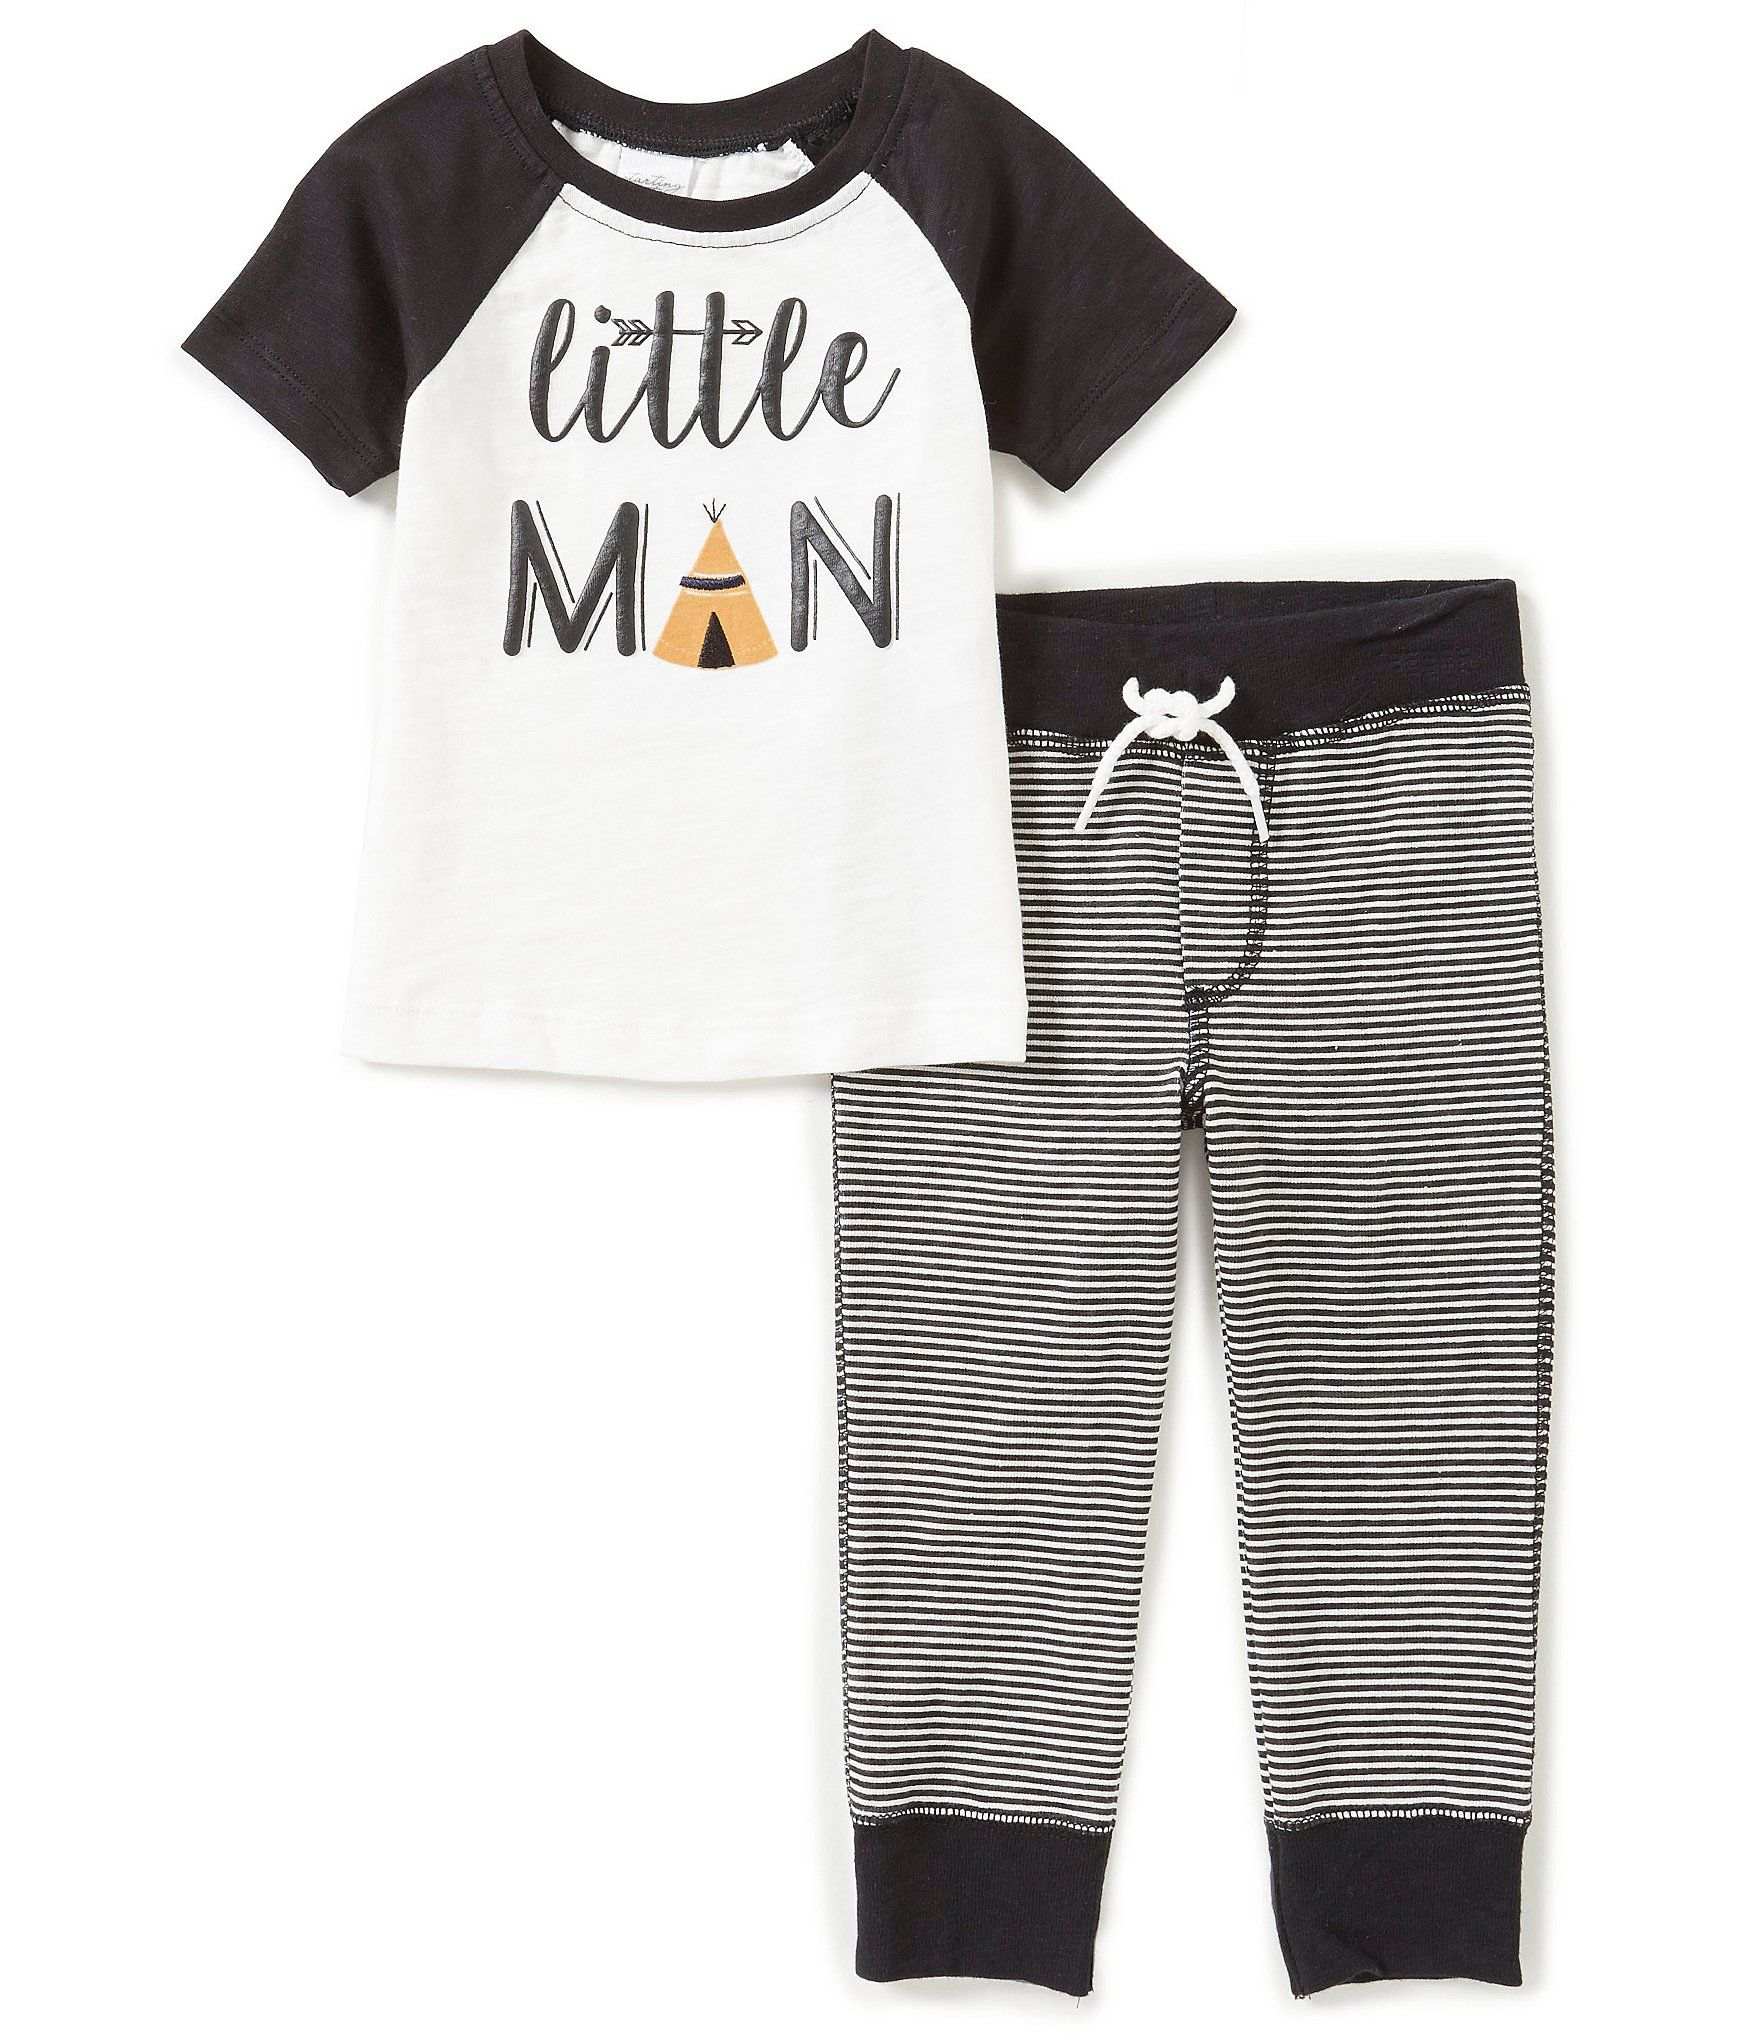 Shop for Starting Out Baby Boys 12 24 Months Little Man Top